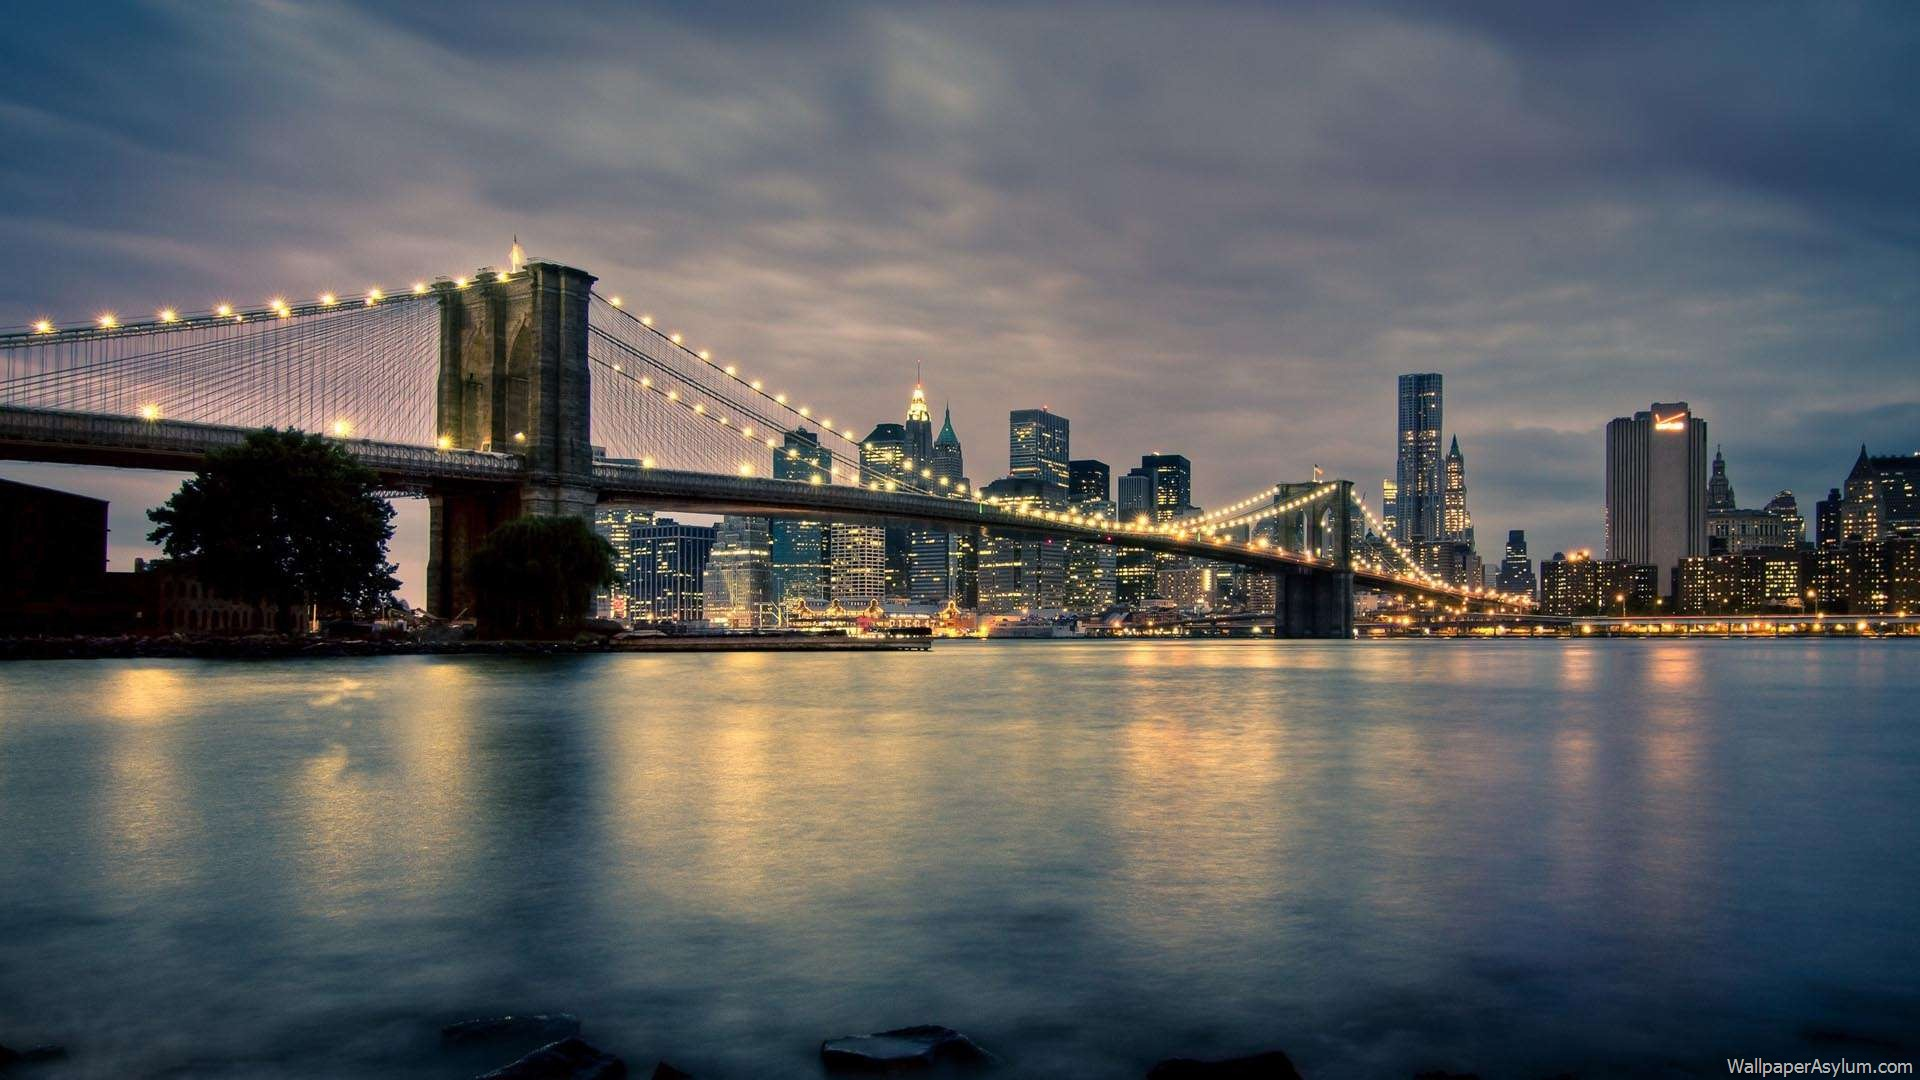 Brooklyn Wallpaper 1920x1080 3889